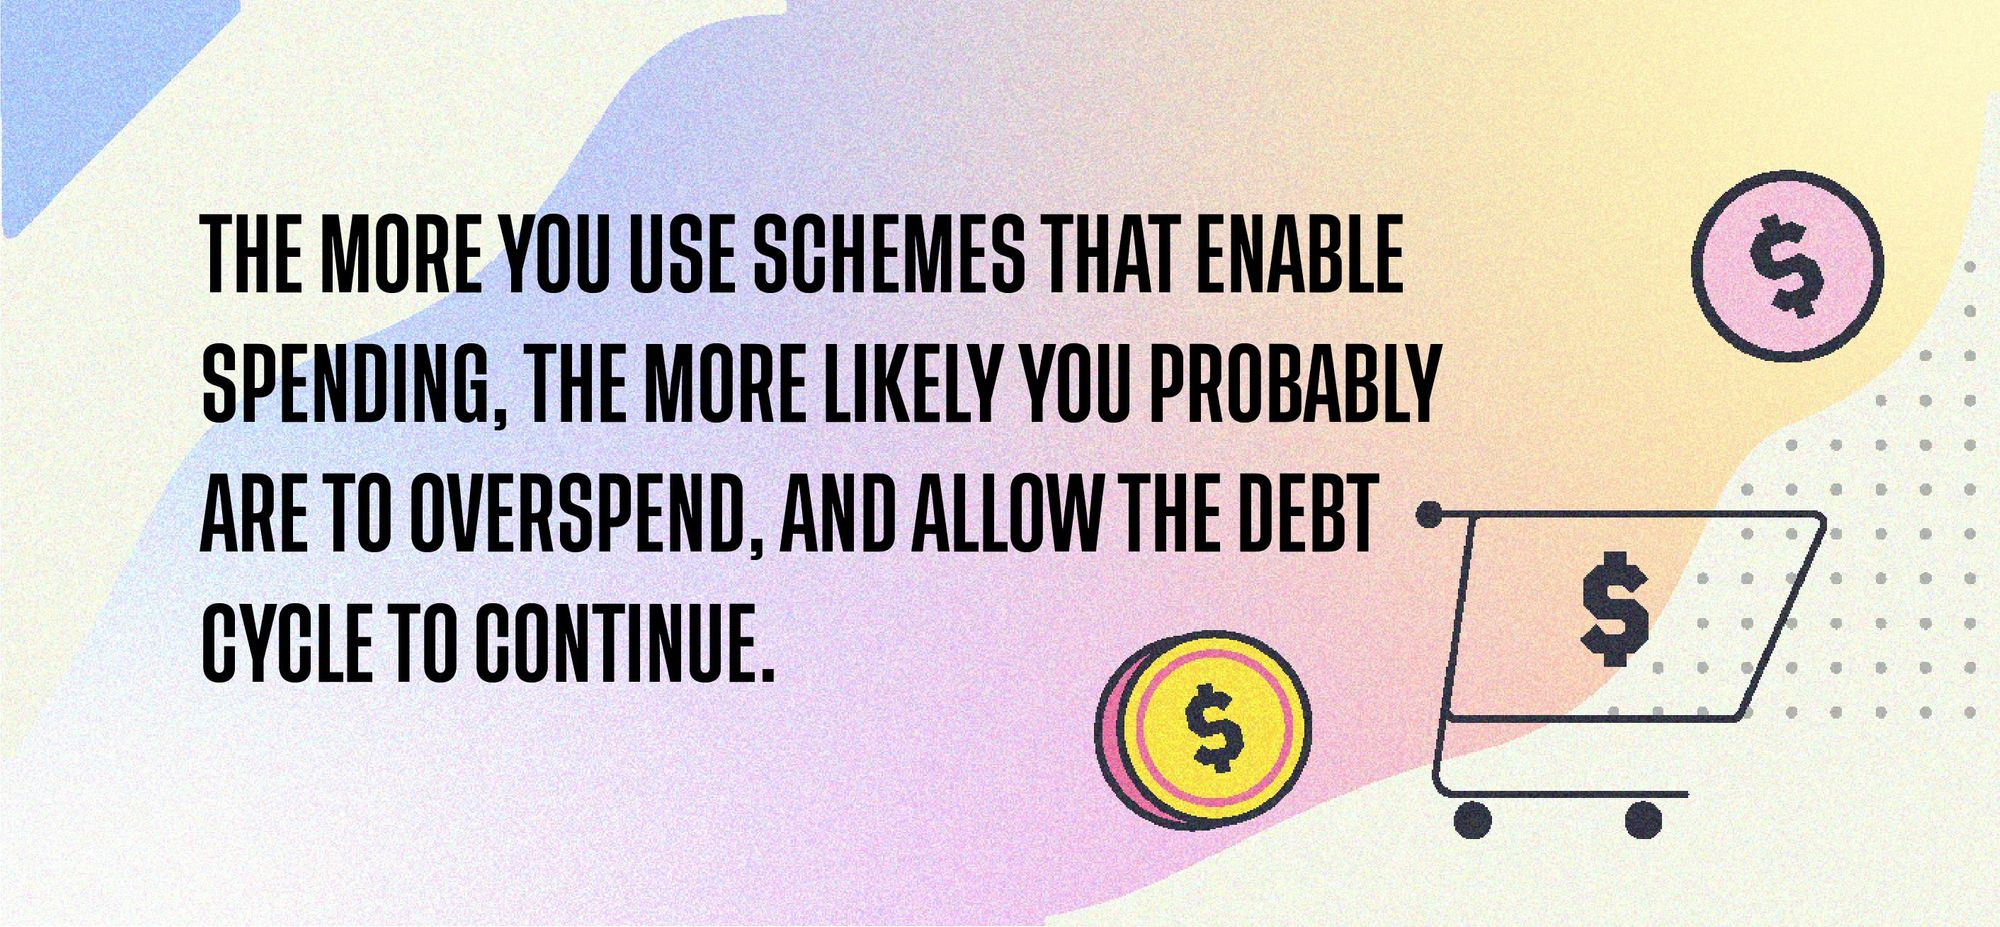 The more you use schemes that enable spending, the more likely you probably are to overspend, and allow the debt cycle to continue.